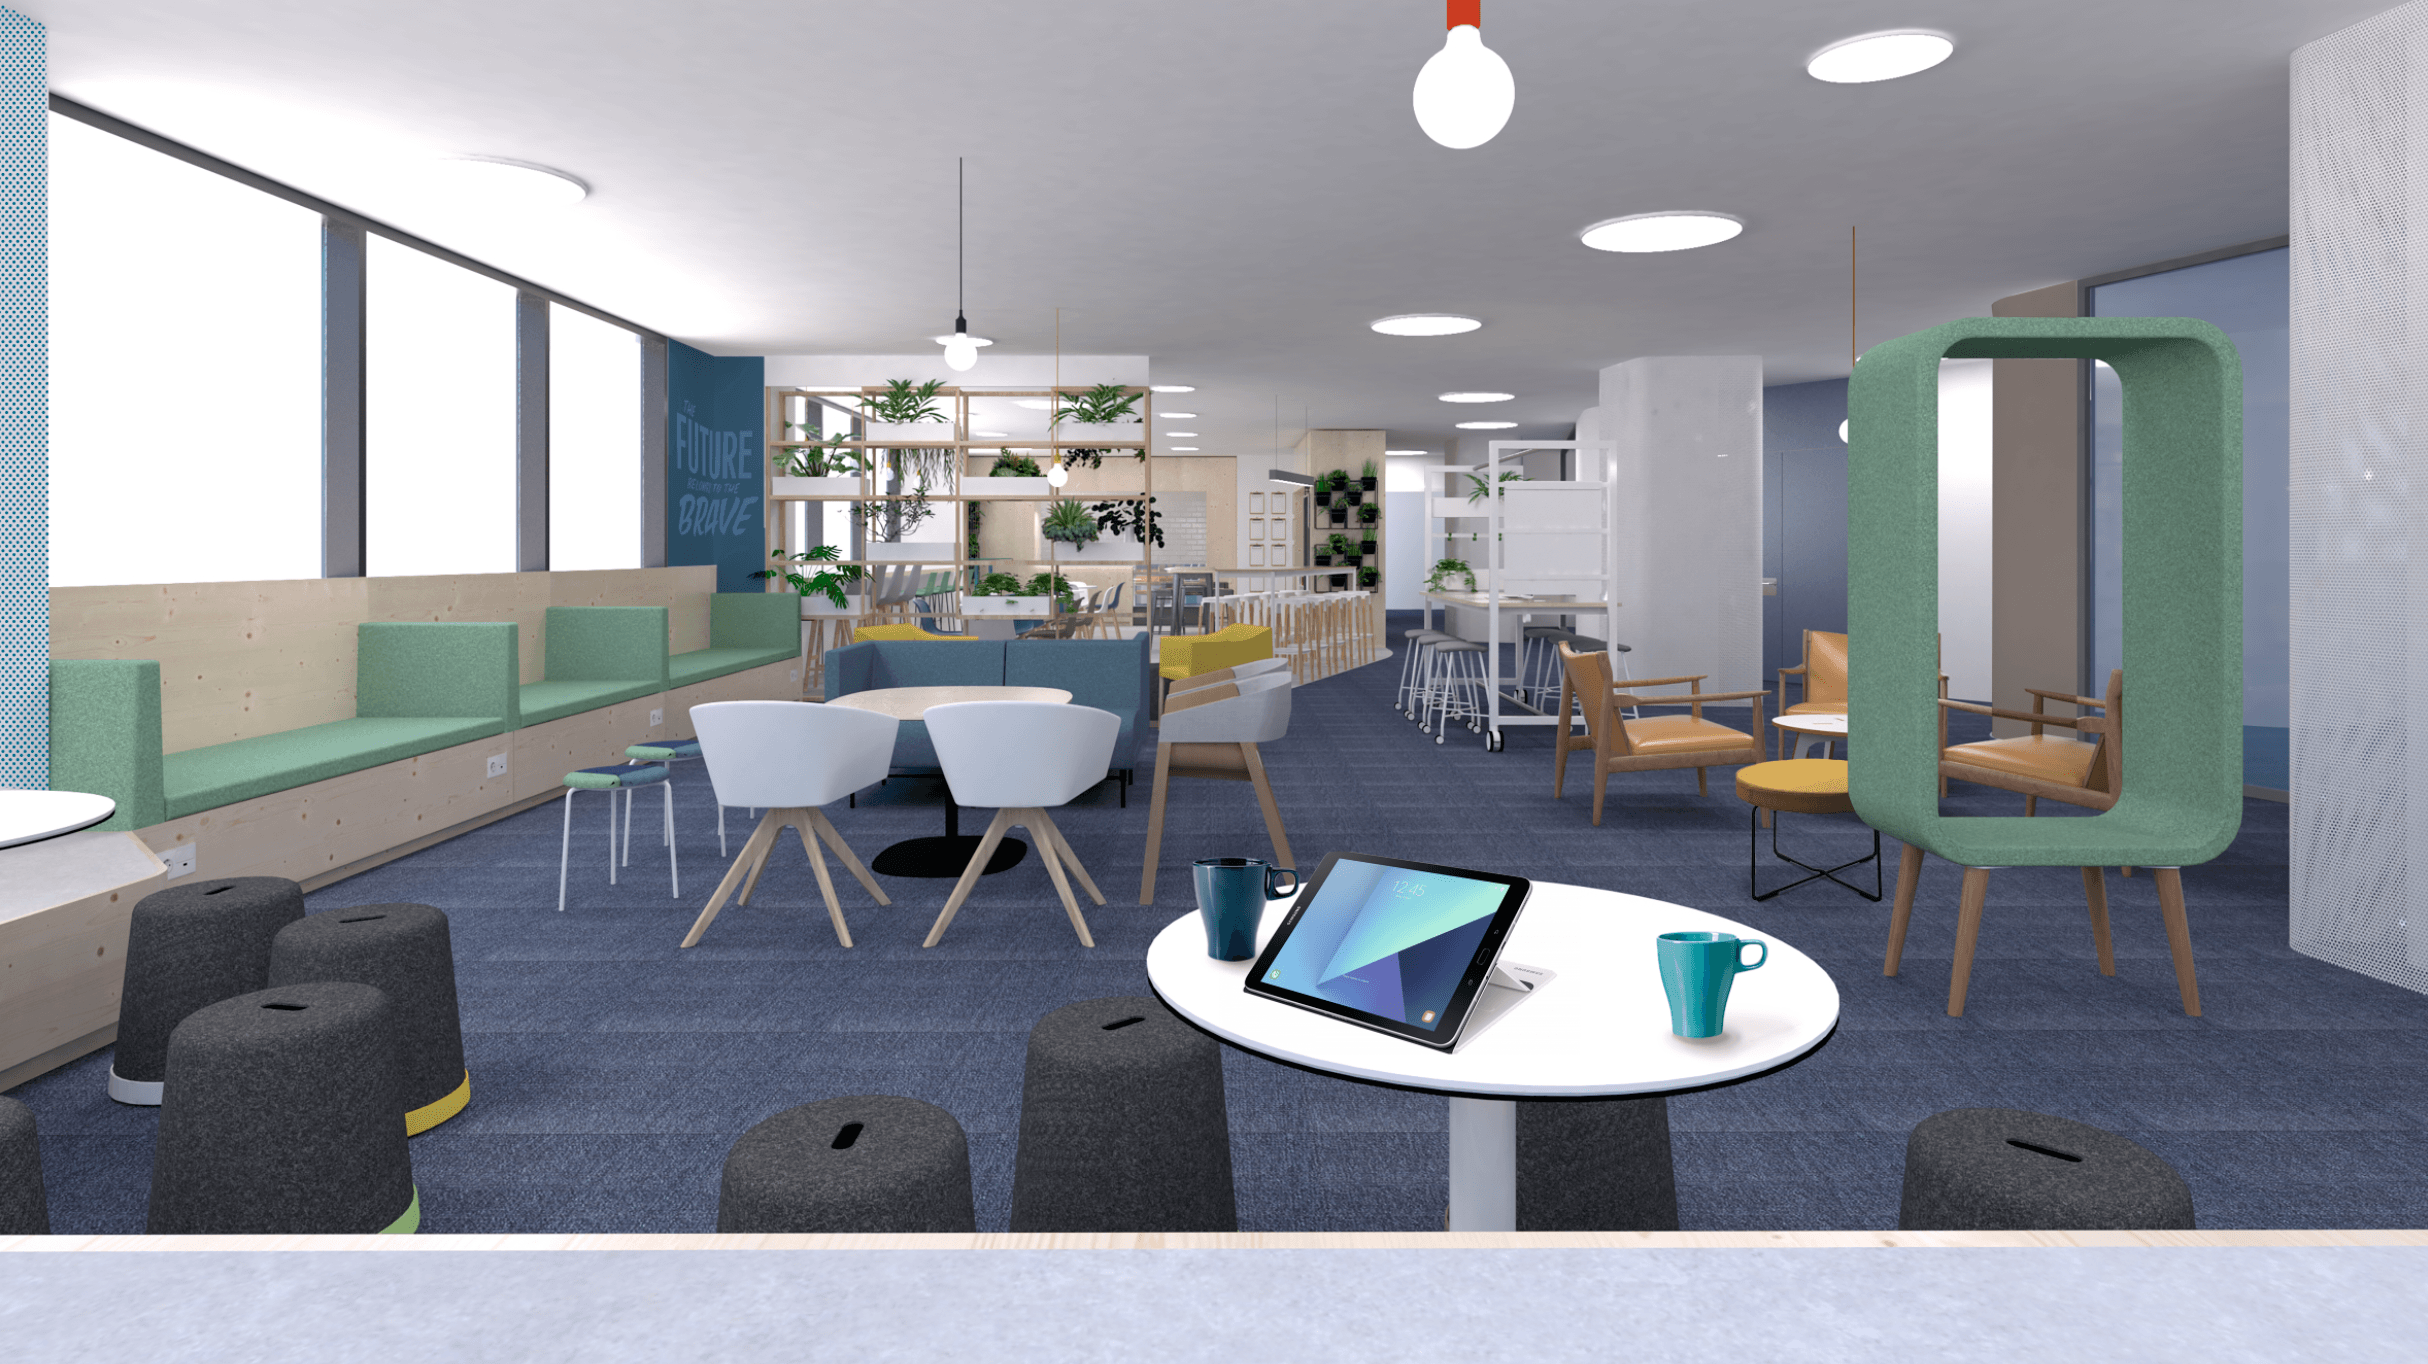 P4_coworking 4